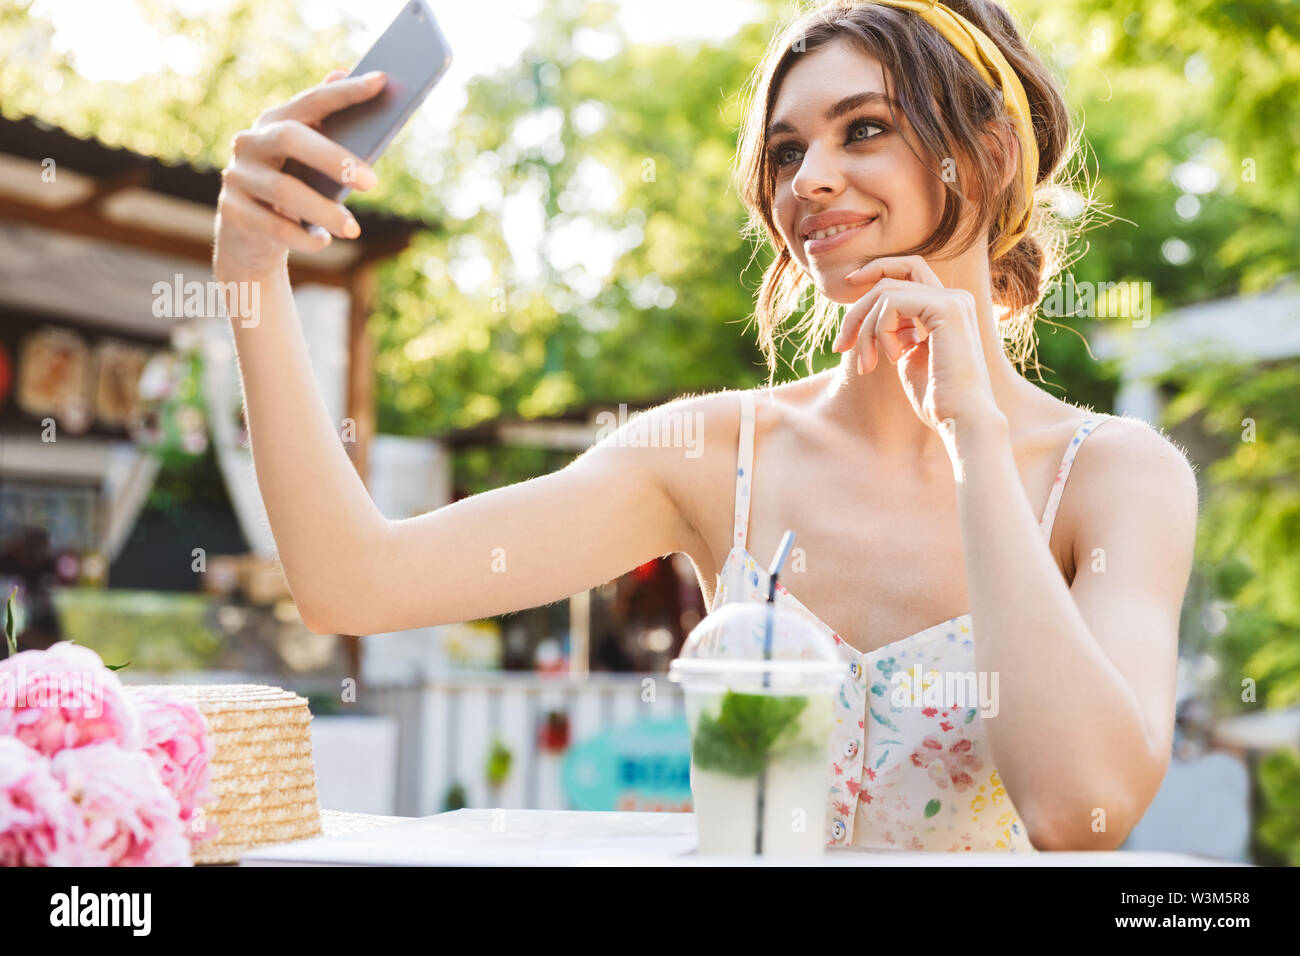 Image of a beautiful happy young amazing woman sitting at the table with flowers in green park take a selfie by mobile phone. - Stock Image